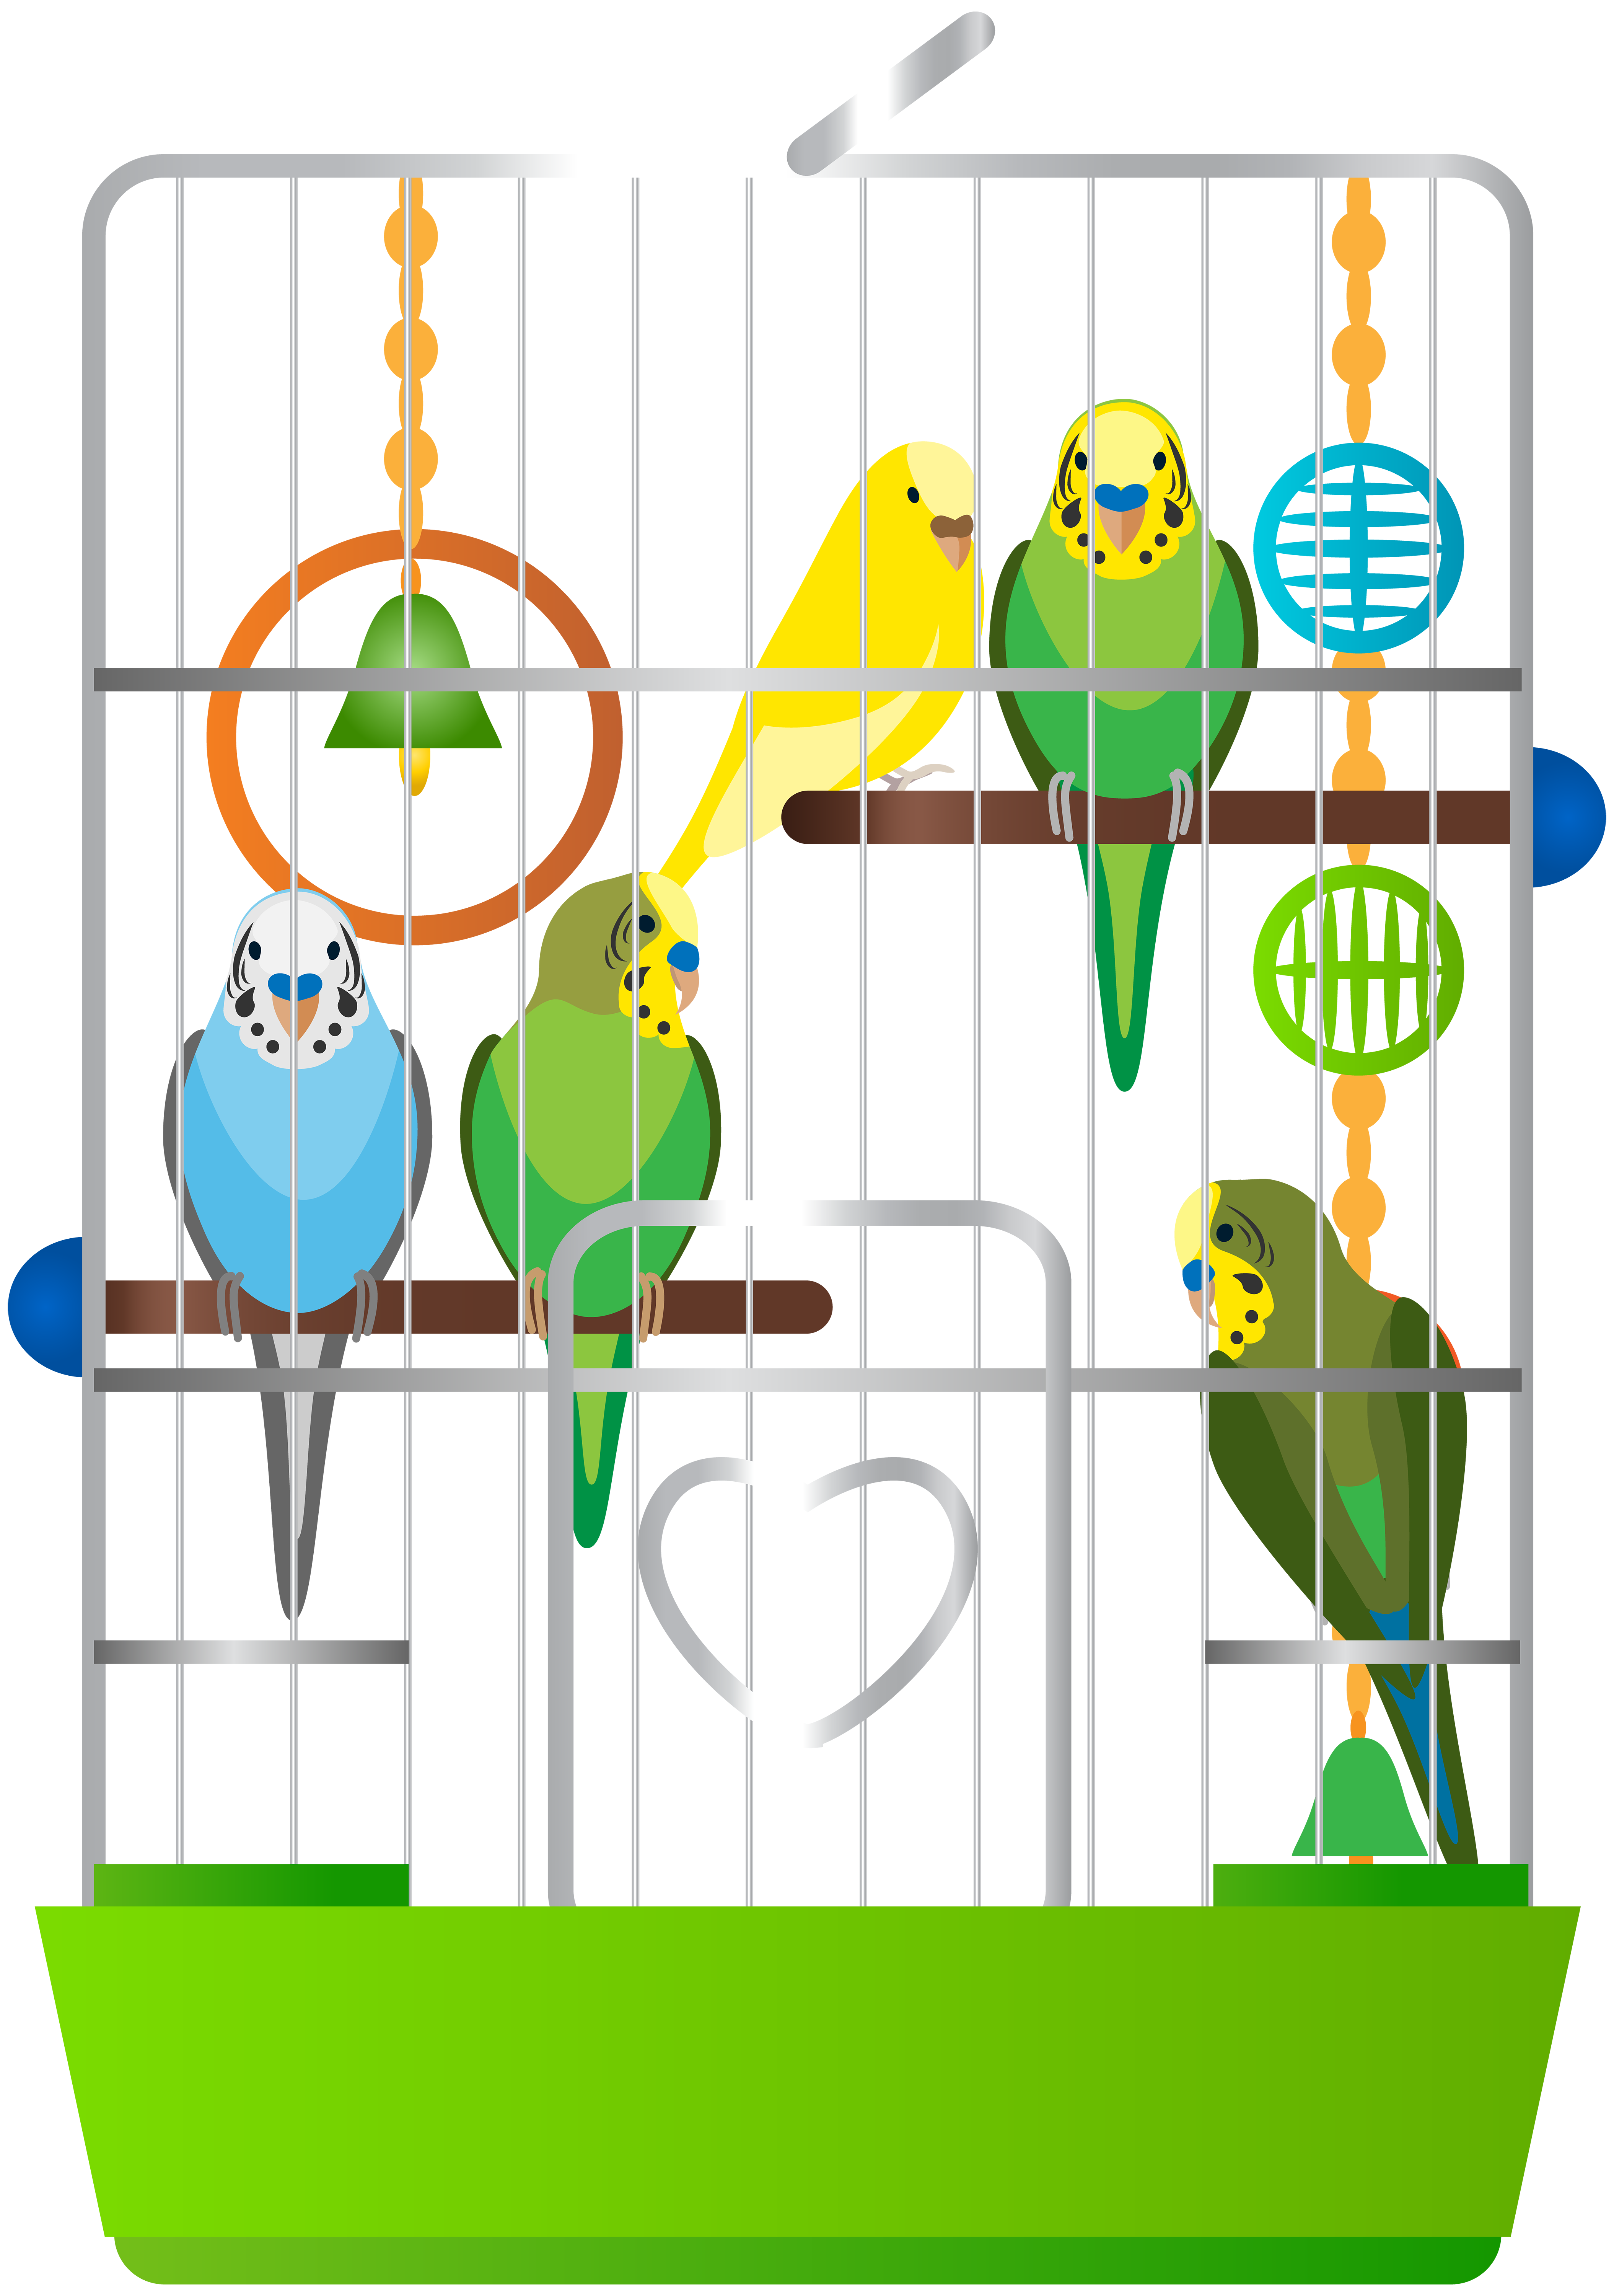 Cage with parrots png. Website clipart green computer